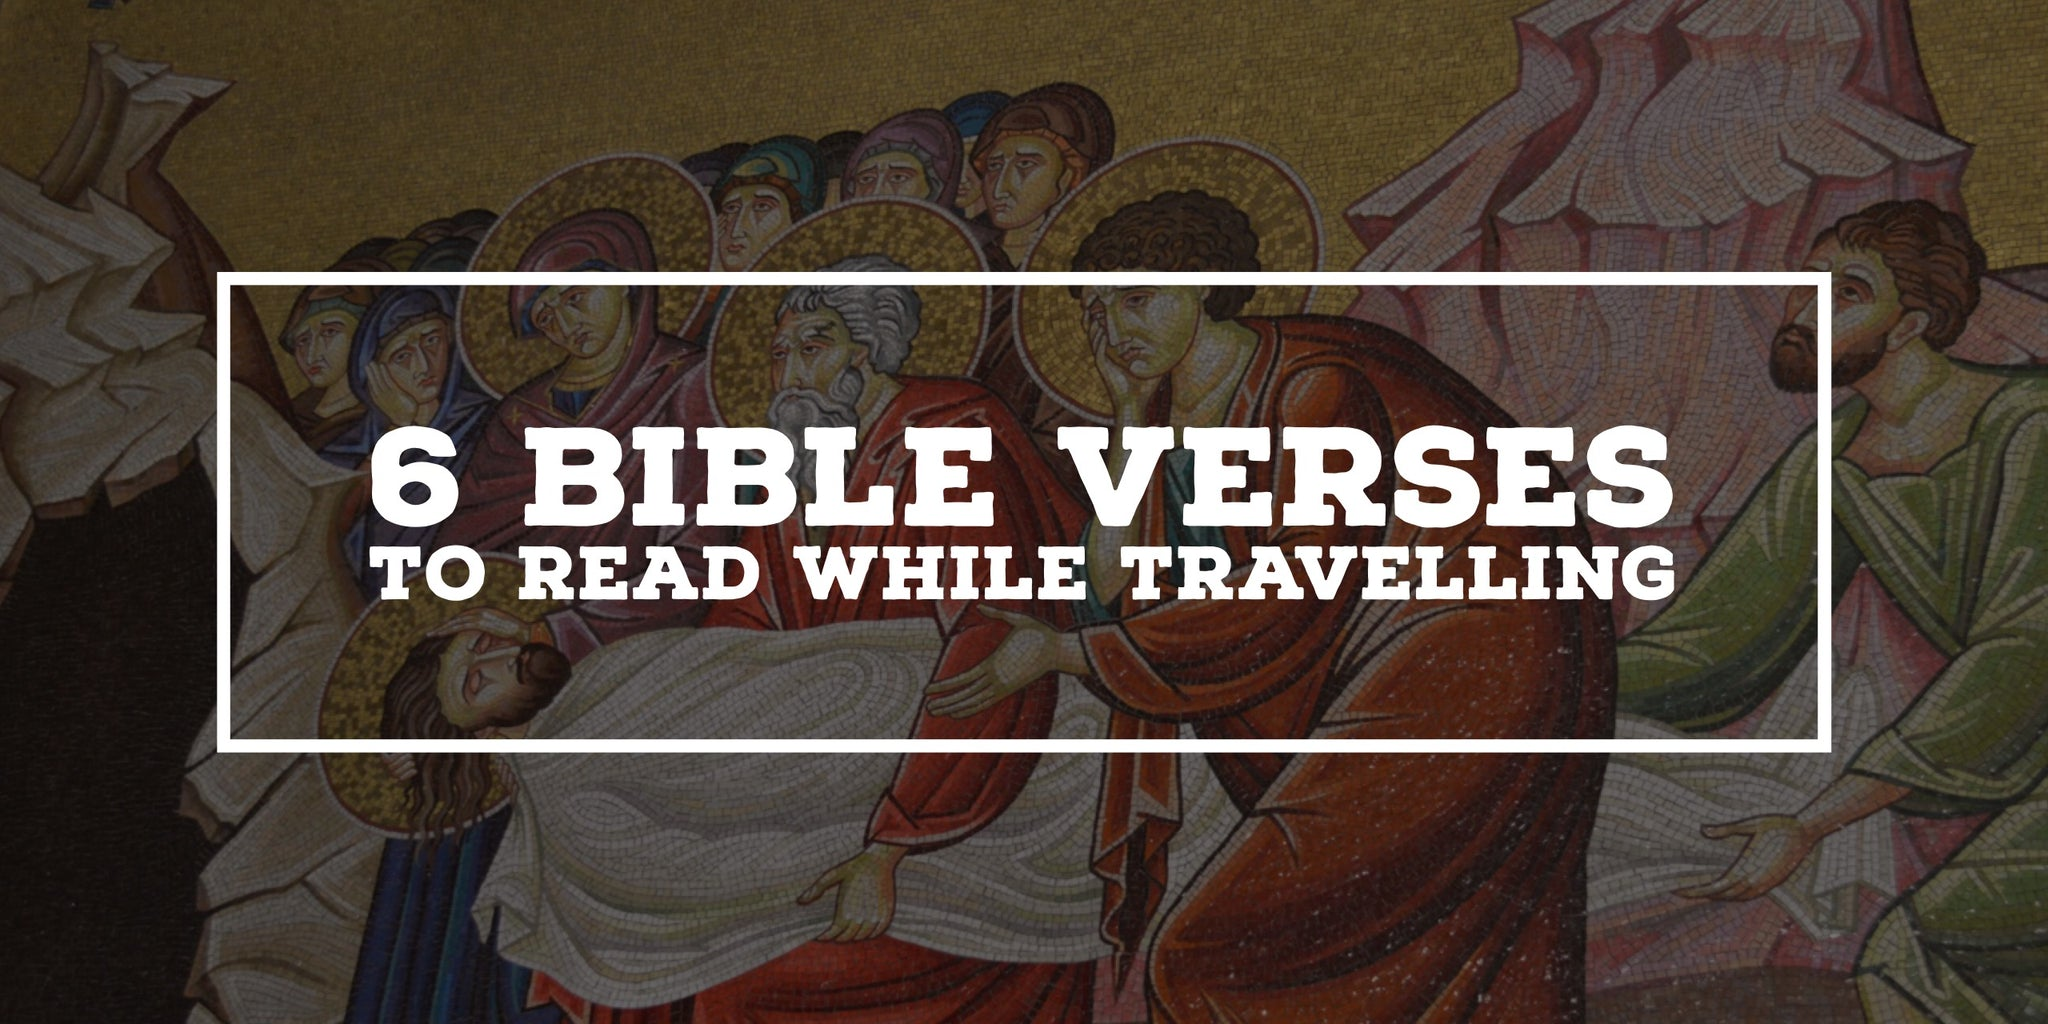 6 Bible Verses To Read While Travelling